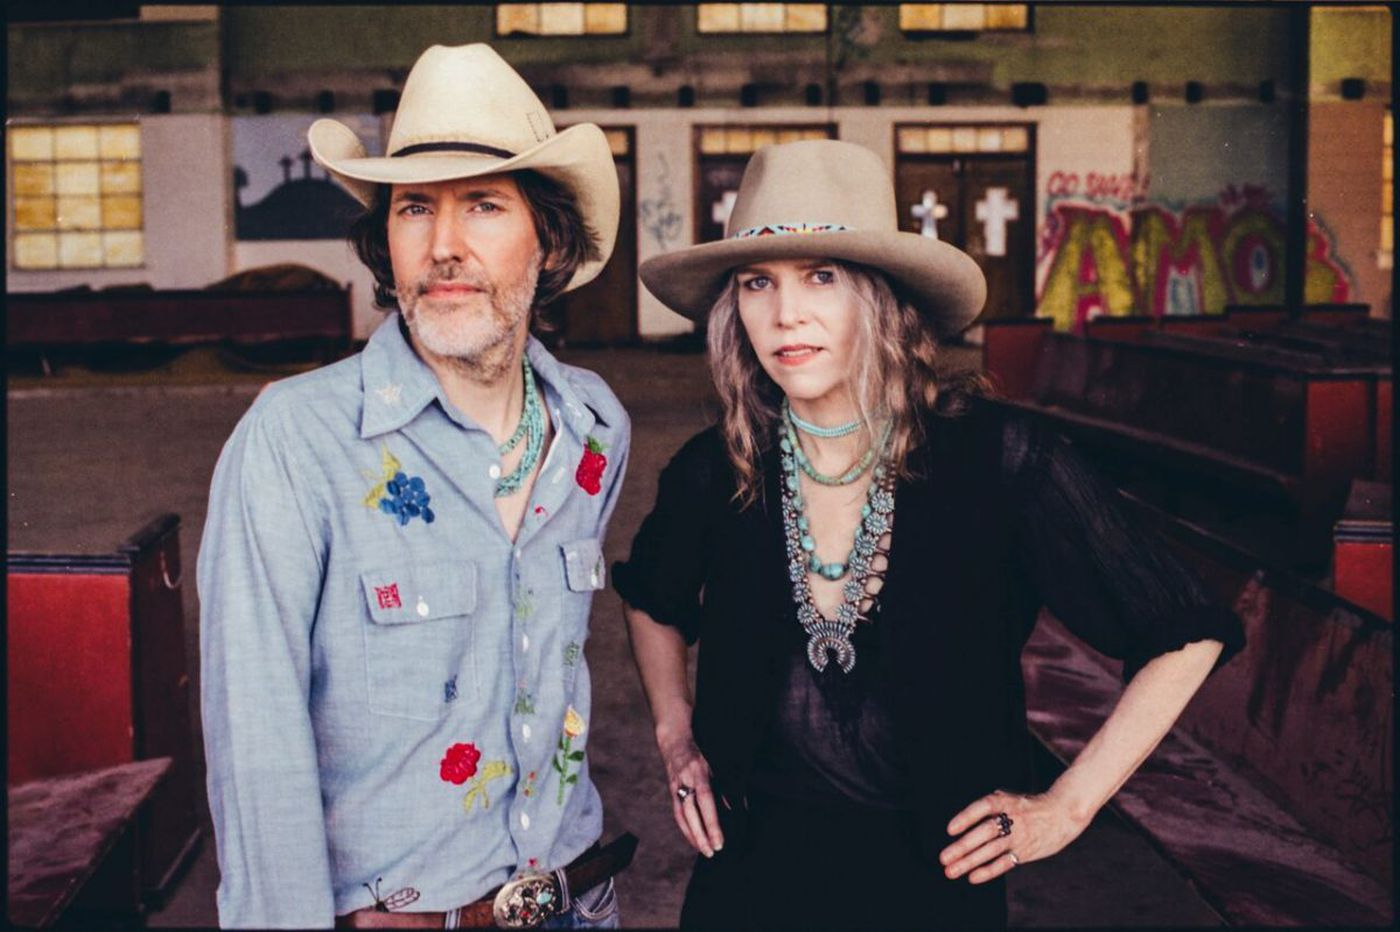 David Rawlings brings his 'Almanack' to Zellerbach Theatre on Thursday